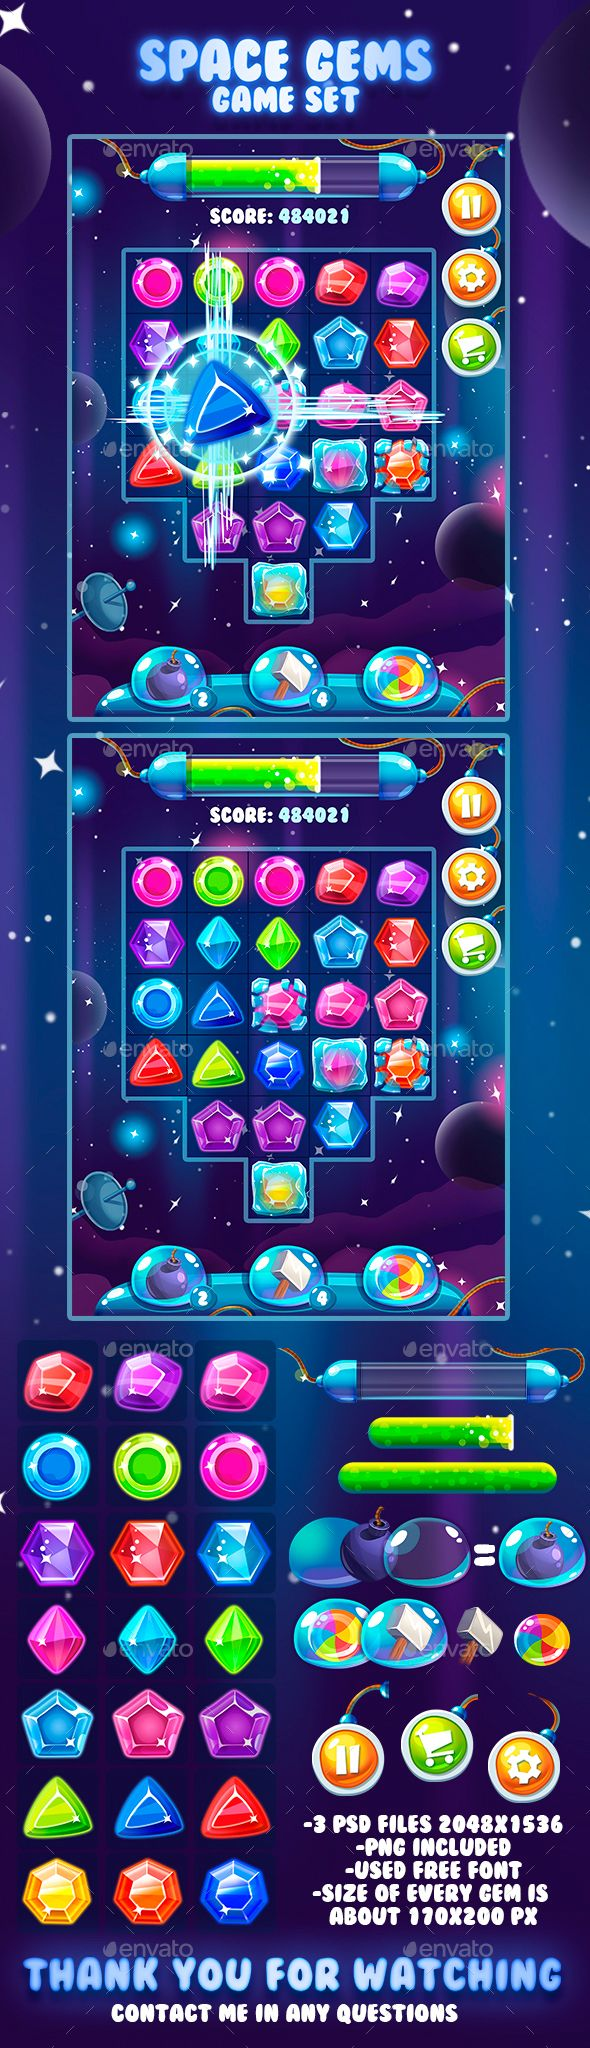 "Check out my @Behance project: ""Space Gems Game Asset"" https://www.behance.net/gallery/47009175/Space-Gems-Game-Asset"